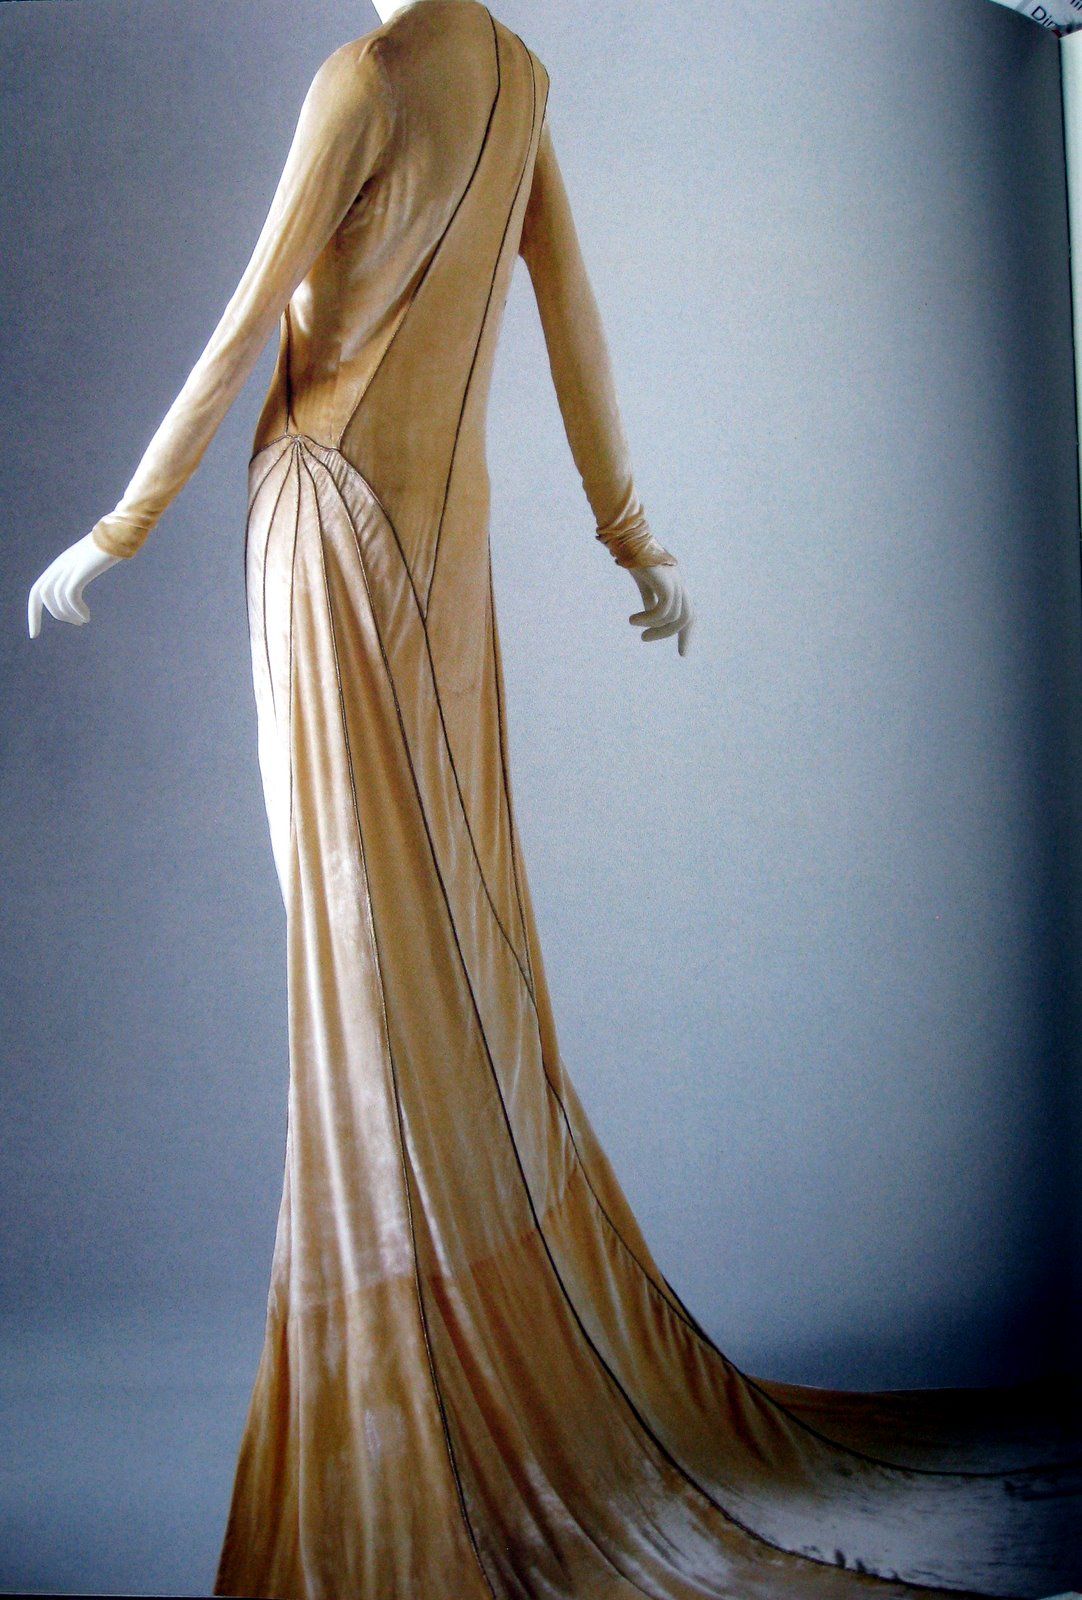 Lesley Turner Madeleine Vionnet And Art Deco